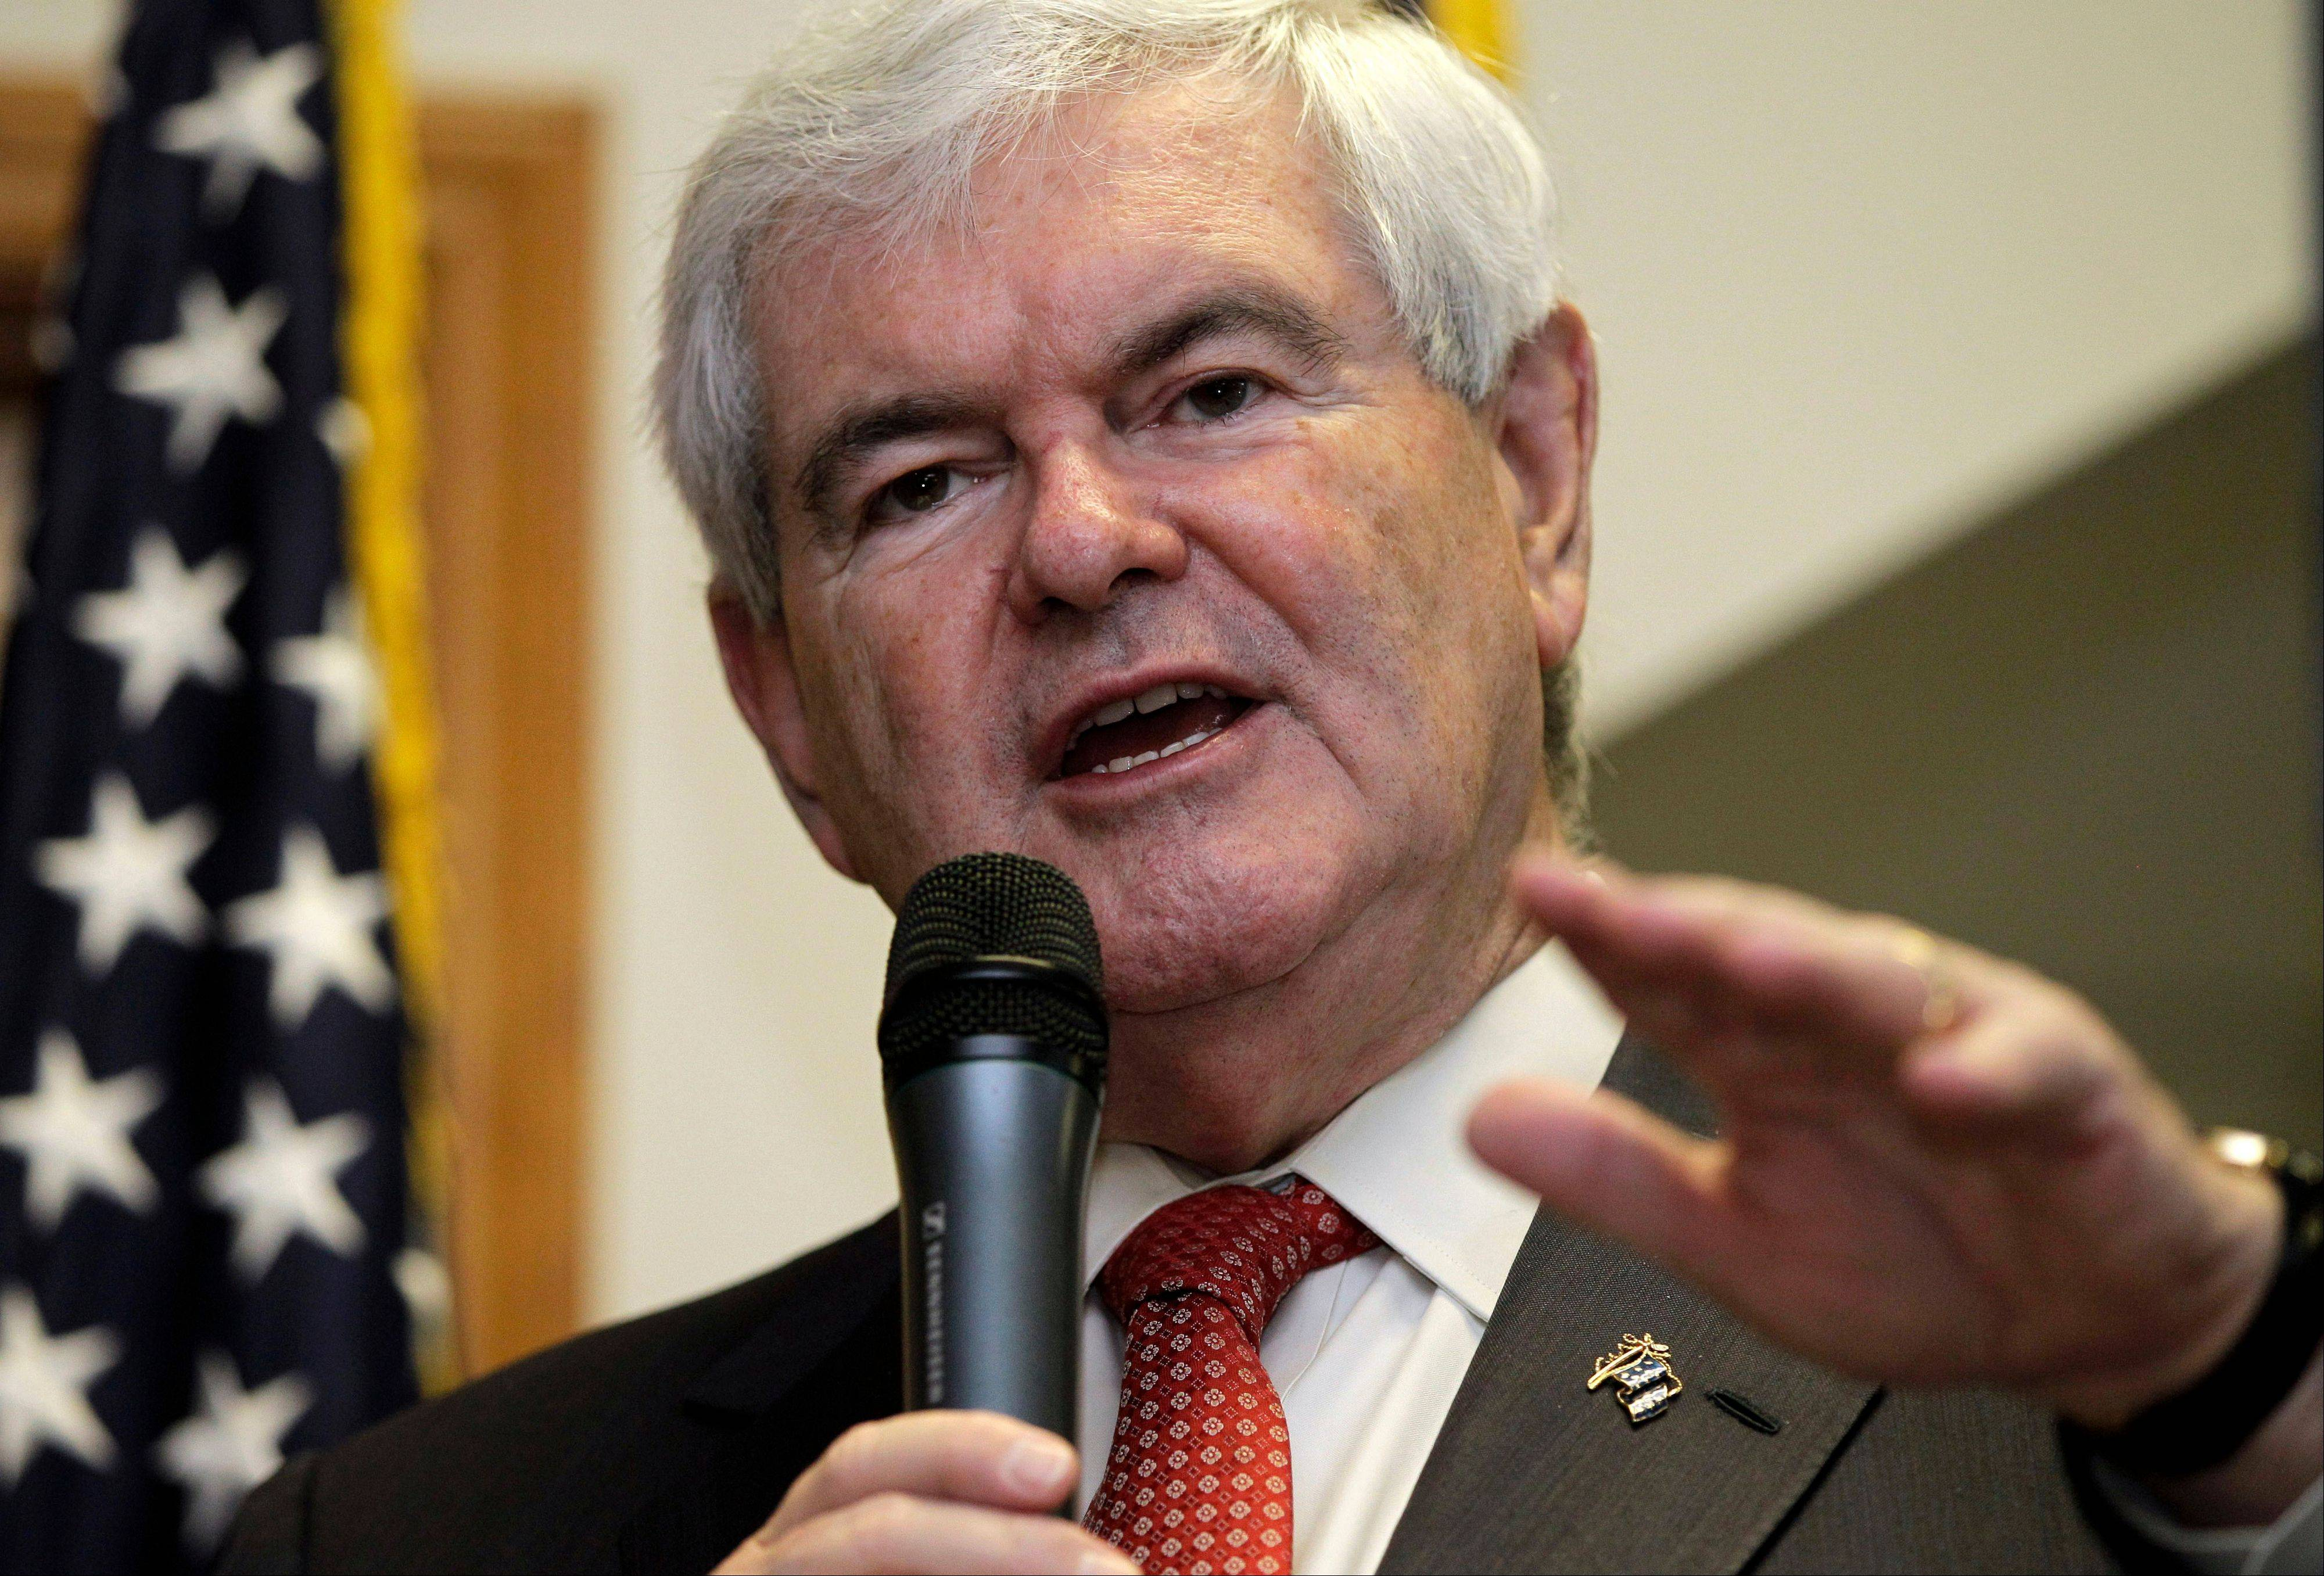 "Republican presidential candidate Newt Gingrich released a video message on his website Tuesday saying he would bring the campaign to a close on Wednesday. The former House speaker said he would continue working to defeat President Barack Obama, whose re-election Gingrich said would be a ""genuine disaster"" for the country."